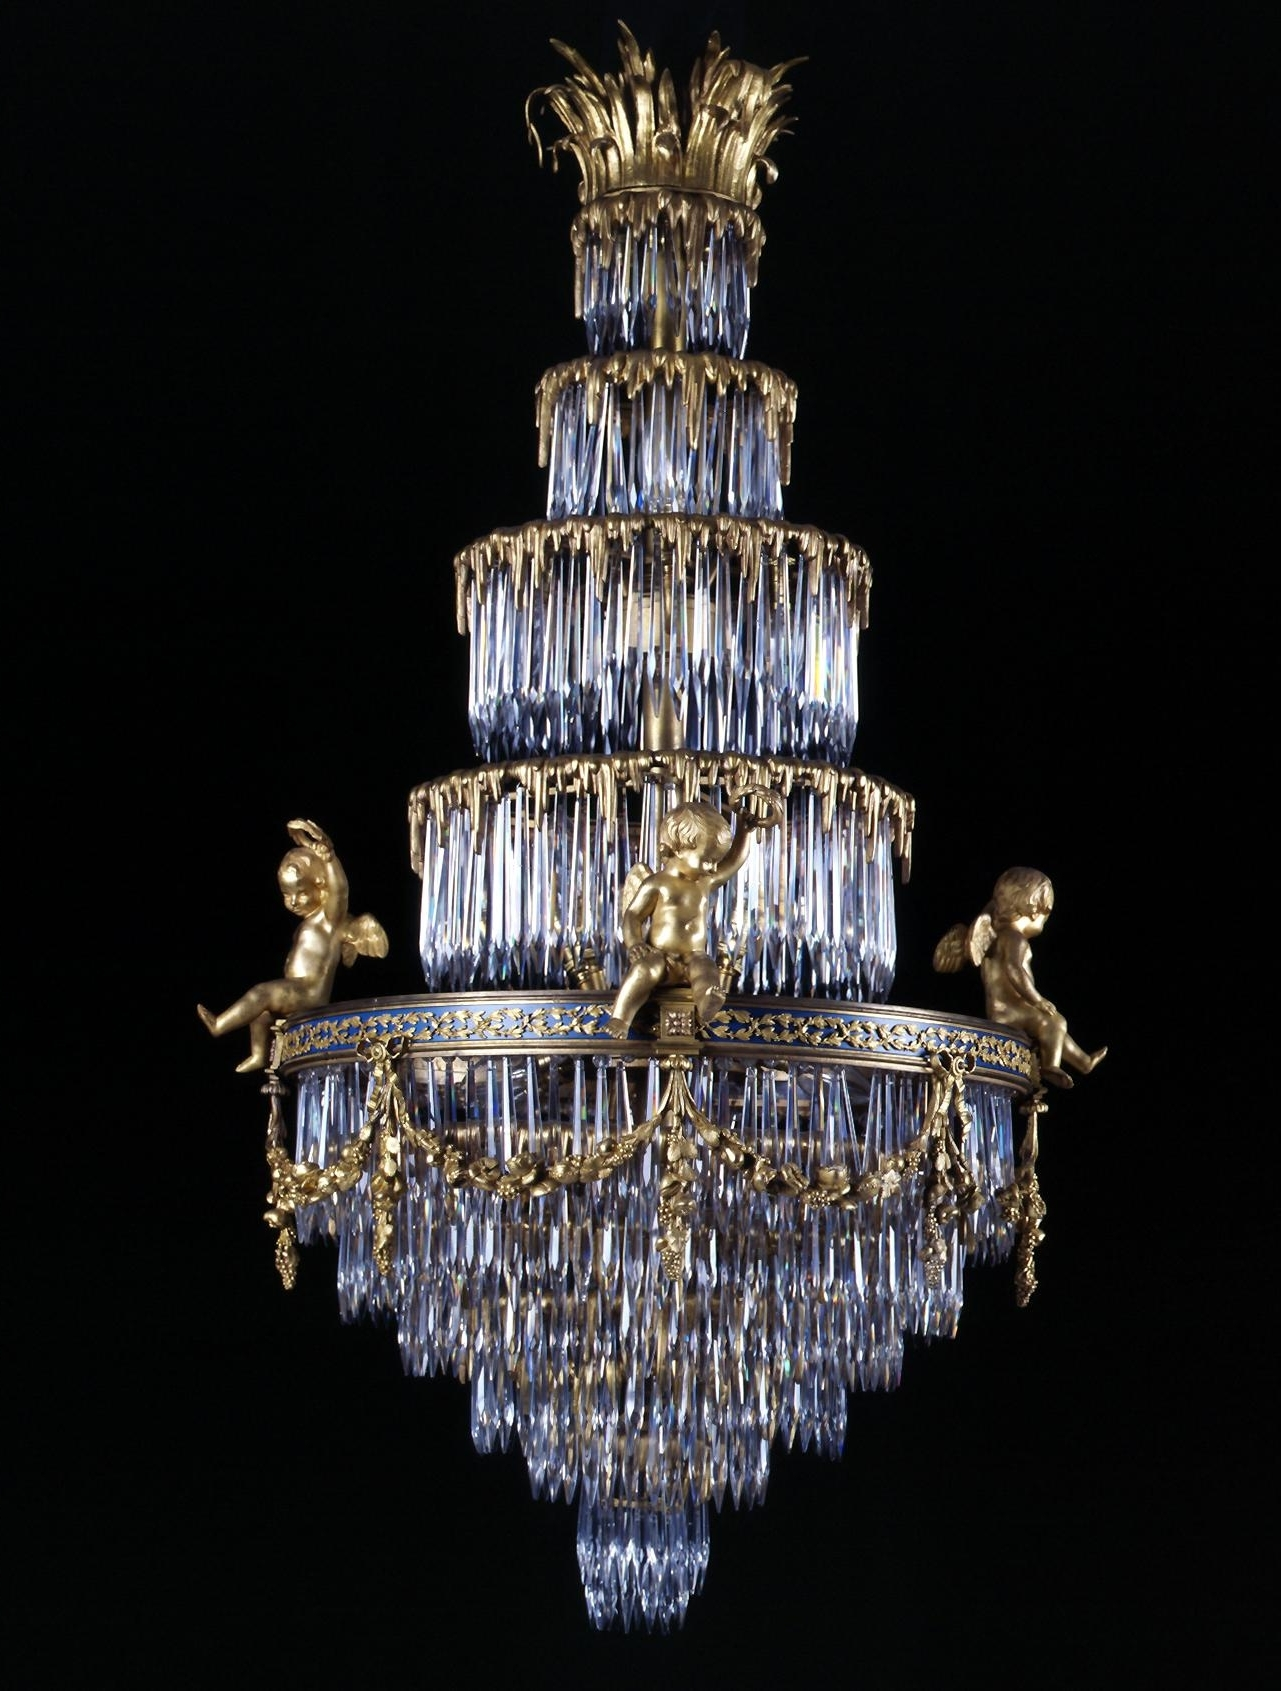 Baccarat A Rare Crystal And Gilt Bronze Waterfall Chandelier French Throughout Recent Vintage French Chandeliers (View 19 of 20)